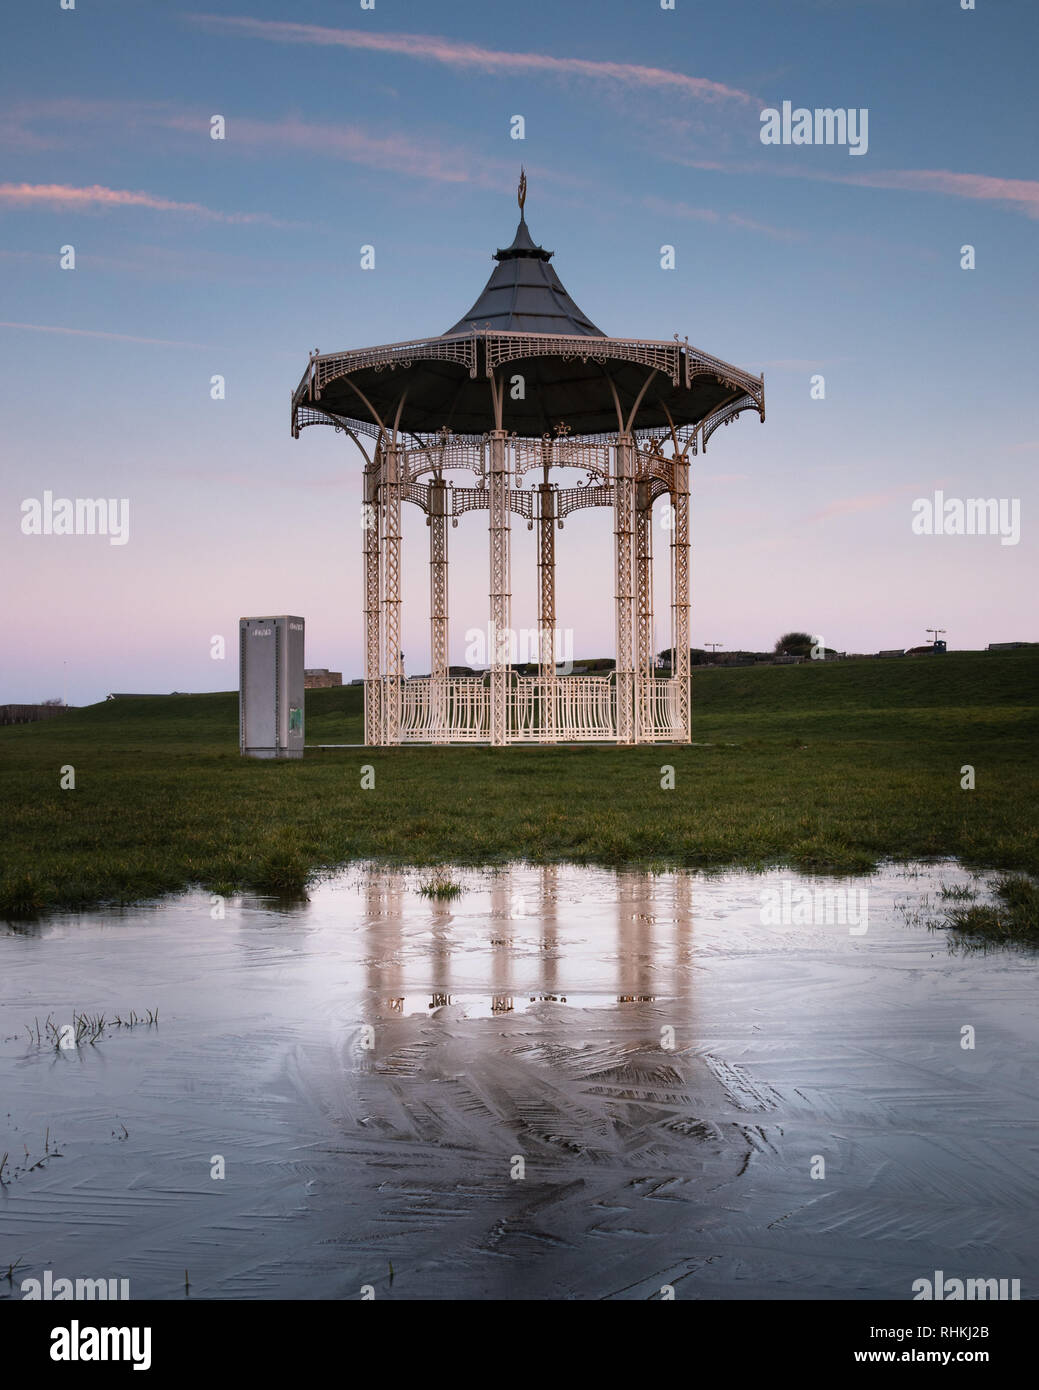 Reflections of Southsea Bandstand in frozen water at sunrise - Stock Image